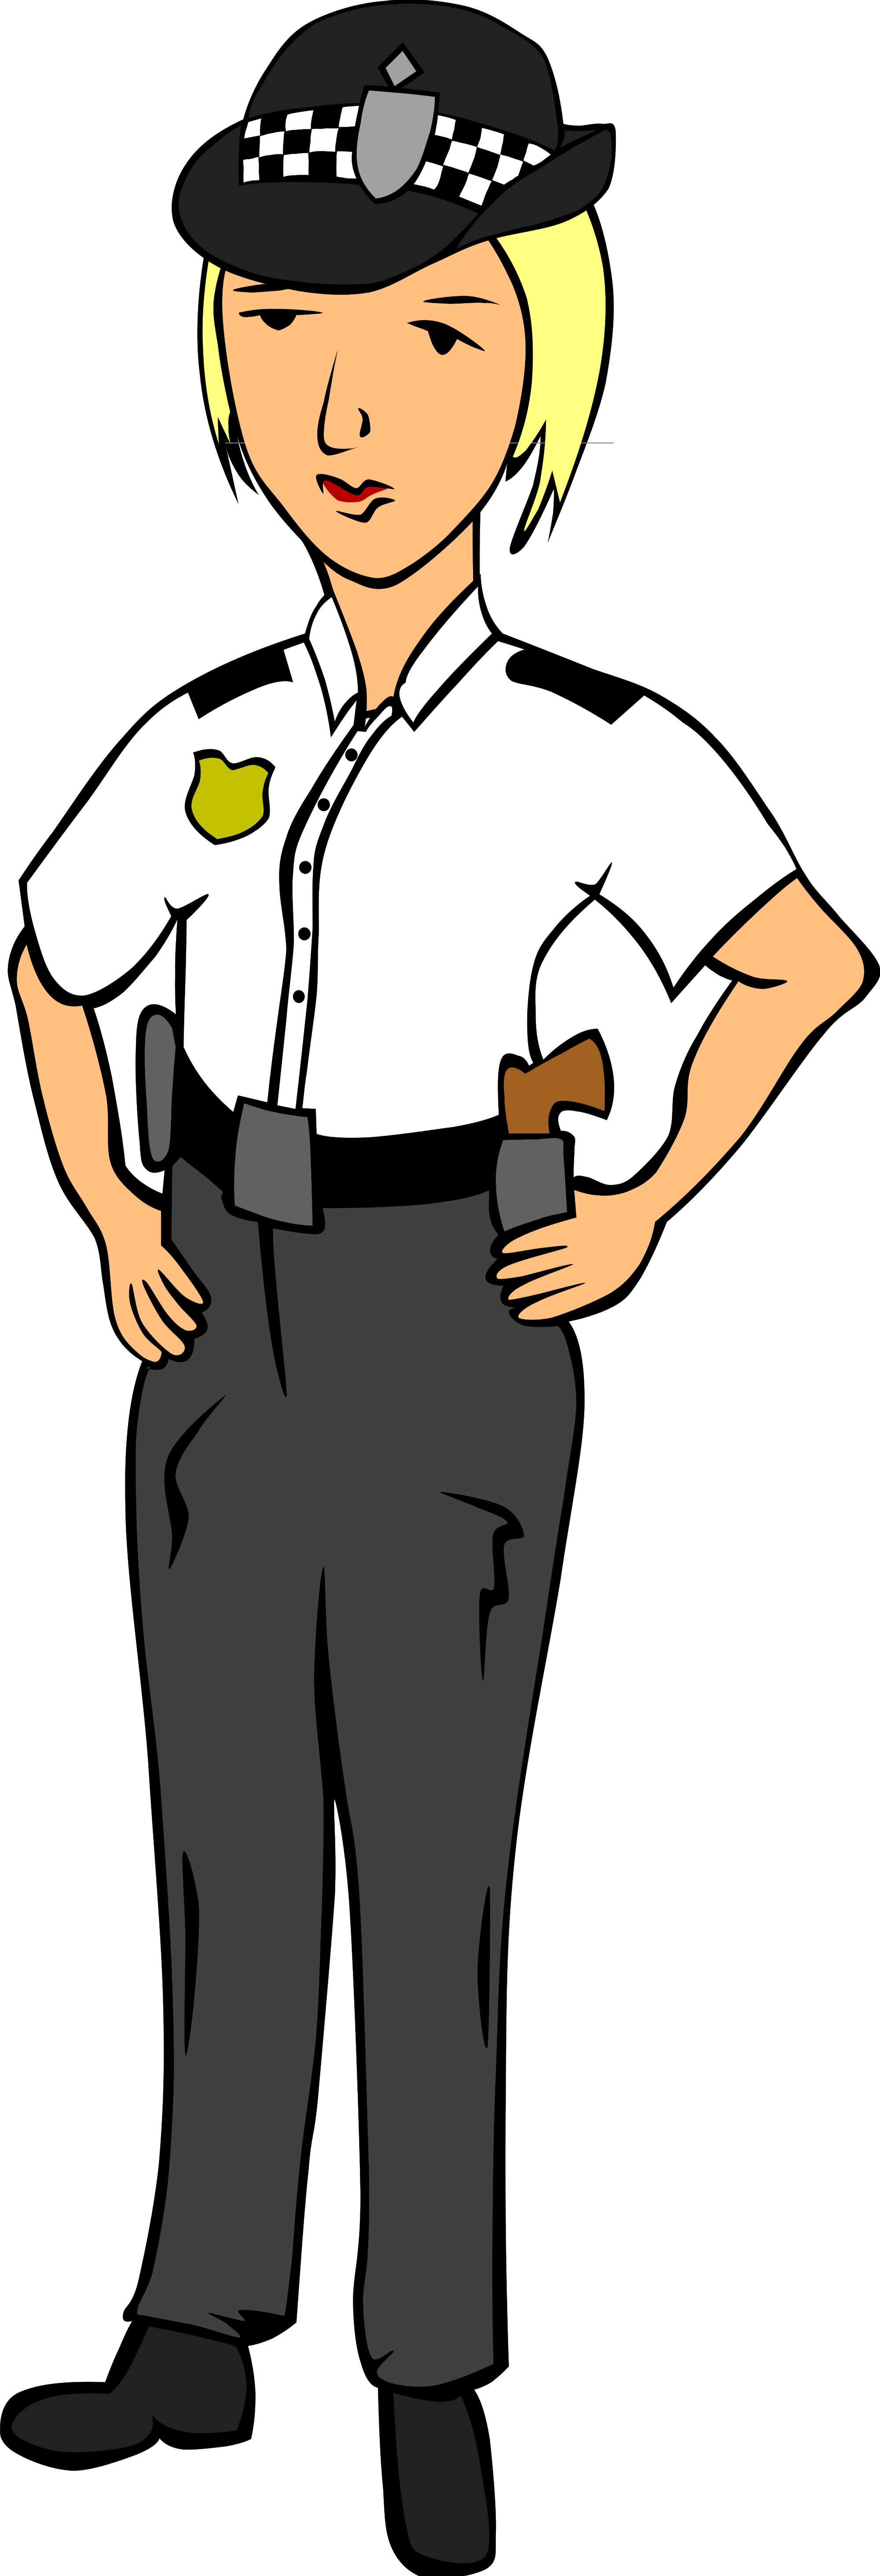 Police clipart uk clipart free File:Tux Paint woman police officer 2.svg - Wikimedia Commons clipart free